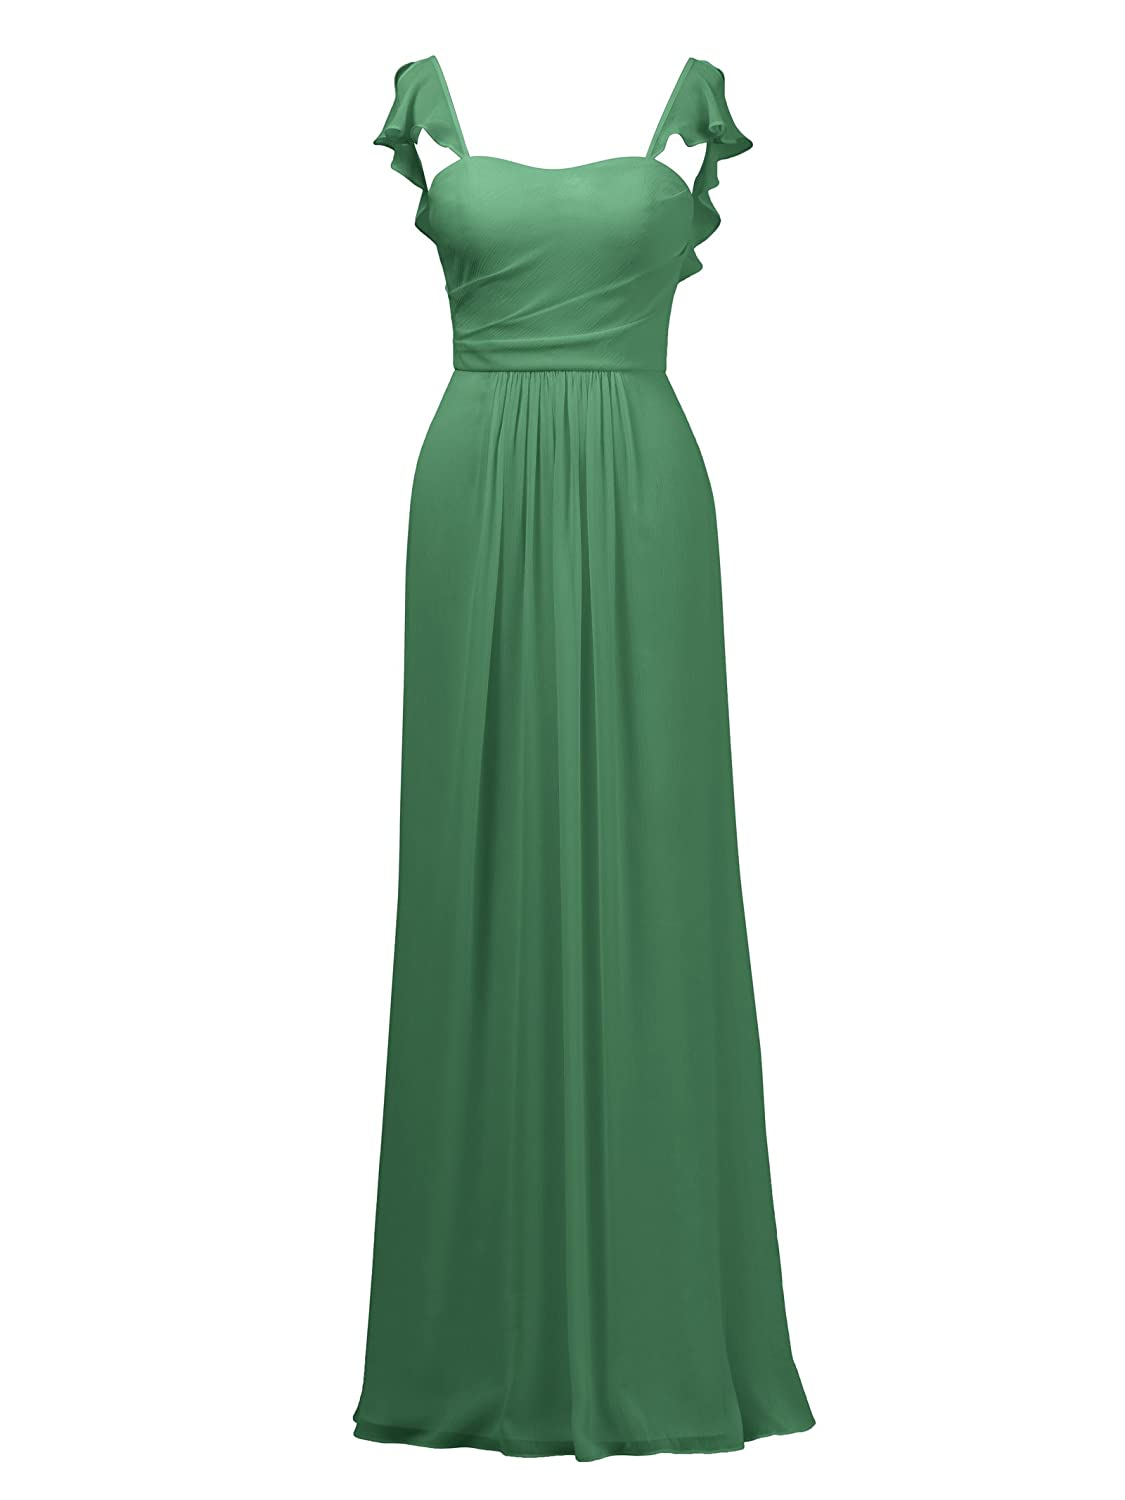 Emerald Alicepub Ruffles Bridesmaid Dress with Cap Sleeve Formal Evening Party Prom Gown